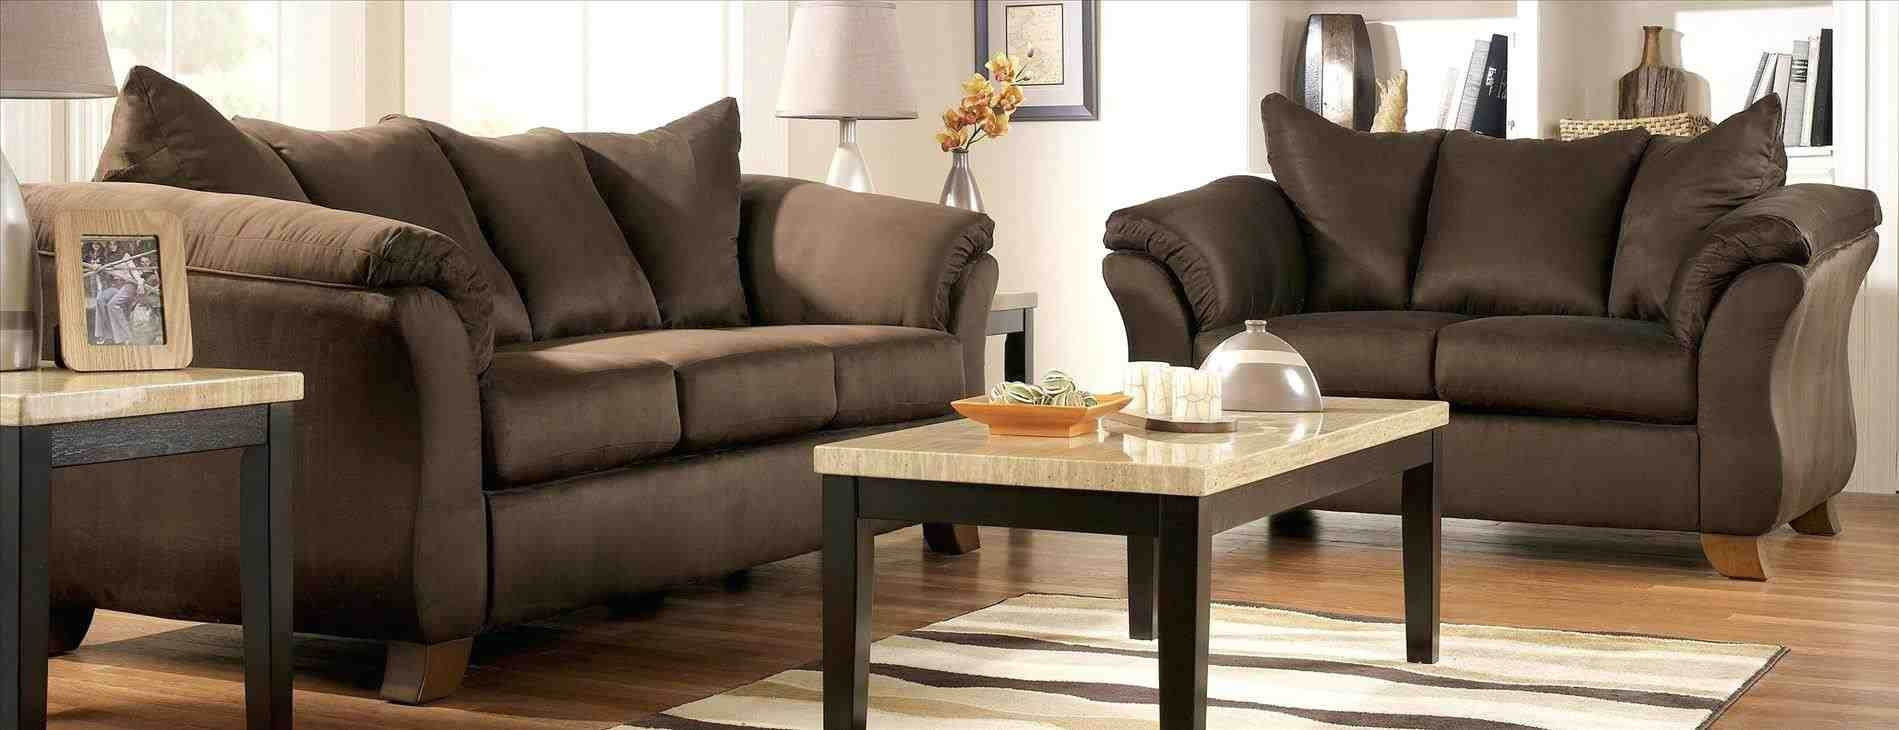 Cheap sofa india modern sofa set designs in kenya sets bangalore malaysia india remodell yourome decor diy with cool sofa living room sets cream leather